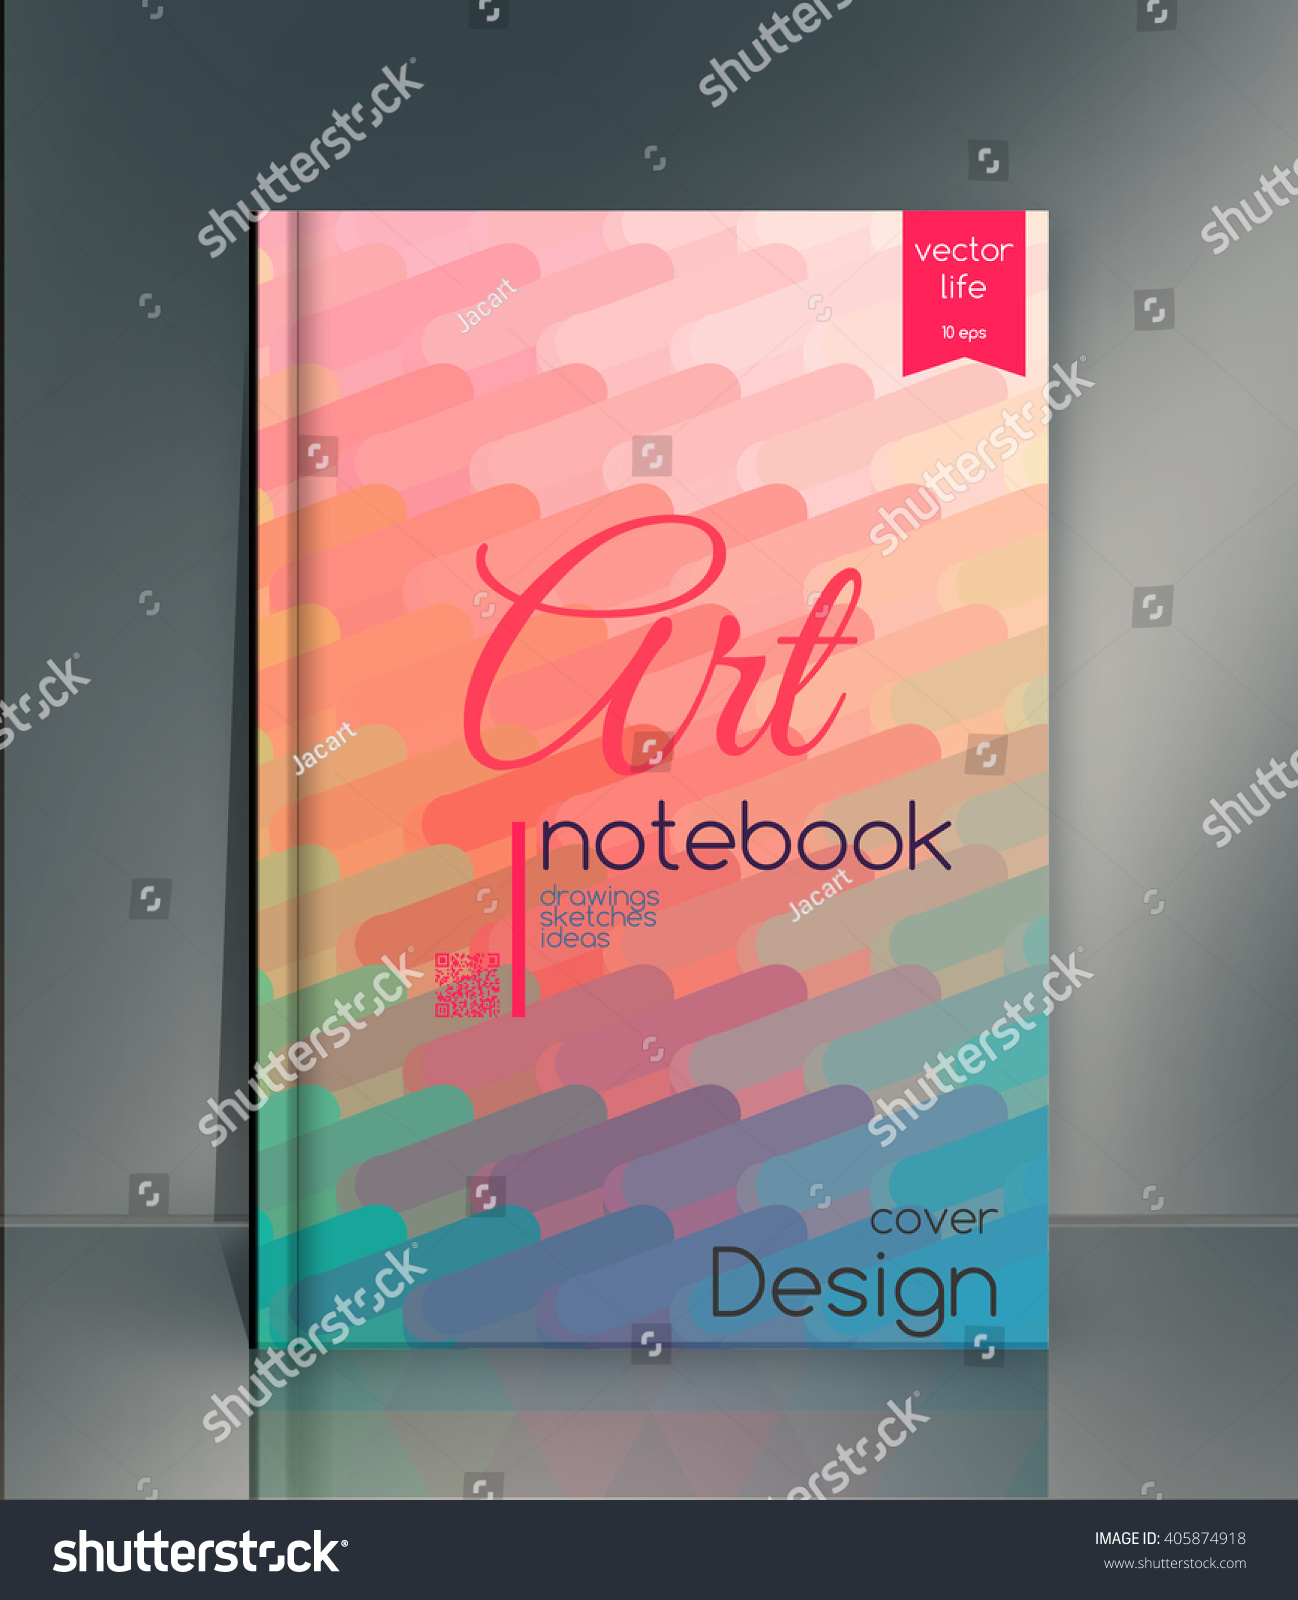 Creative Book Cover Ideas ~ Style template. abstract background. book cover. ez canvas